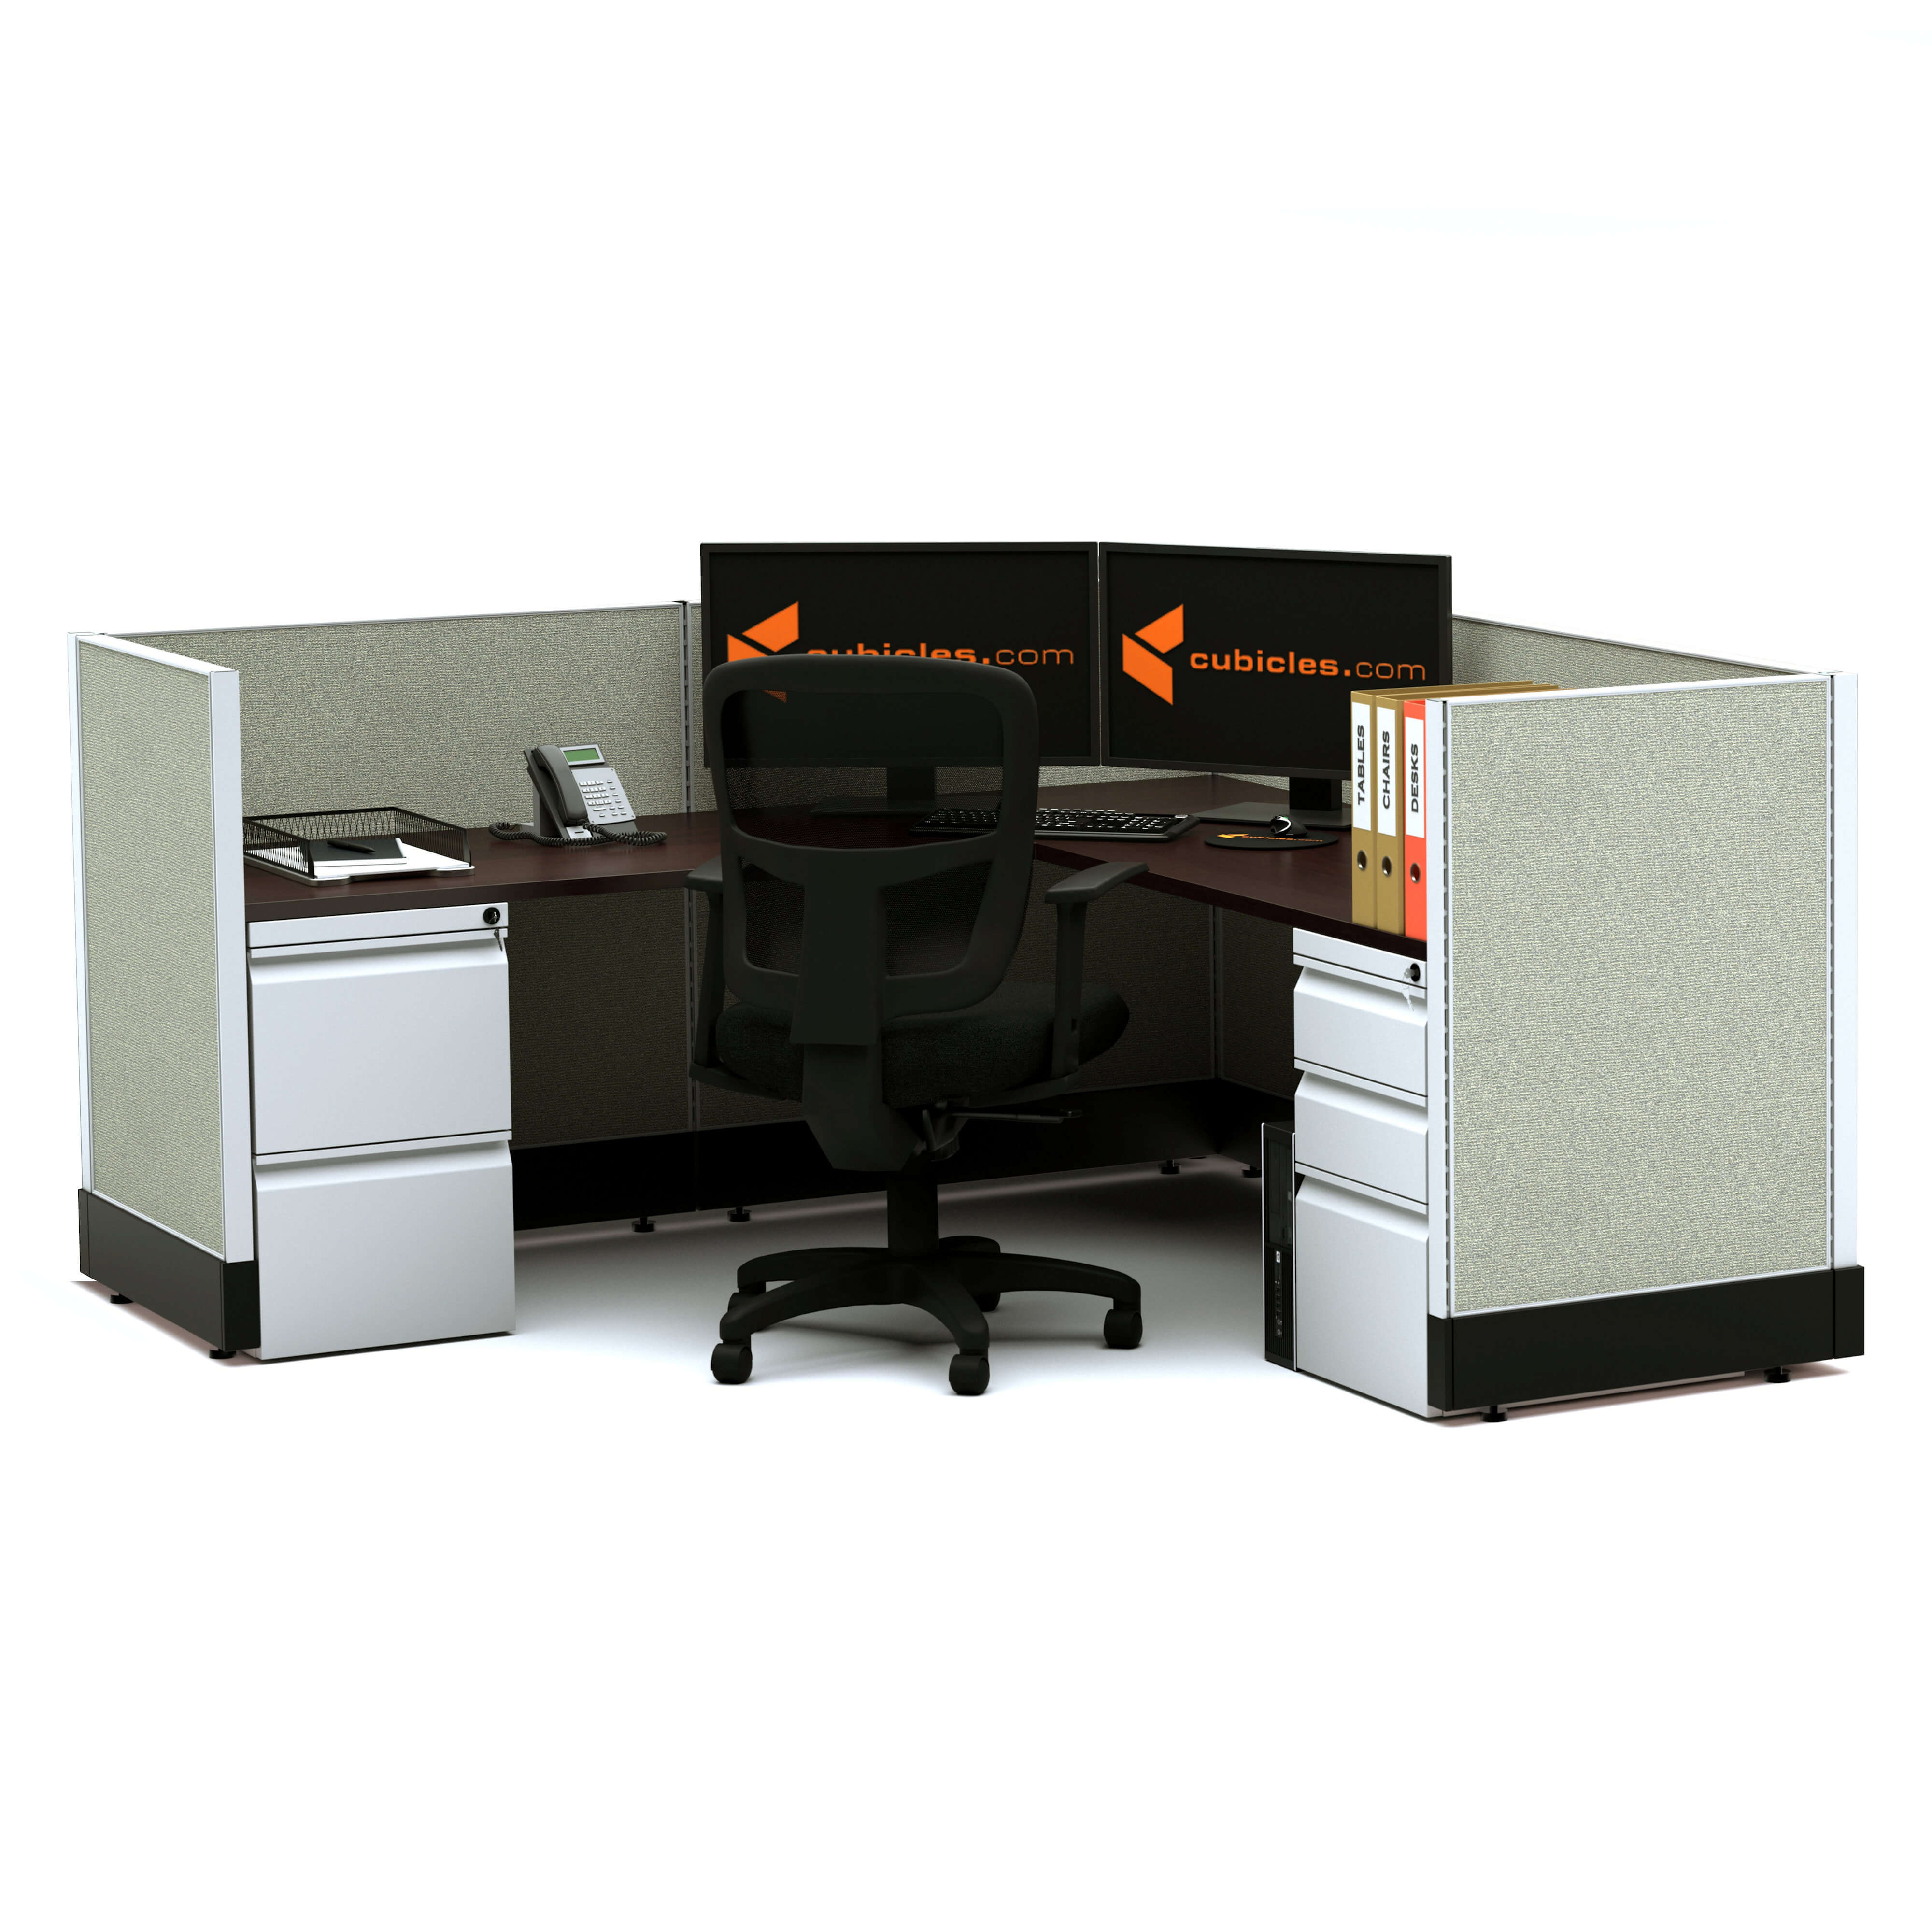 Modular office furniture system furniture 39 unpowered